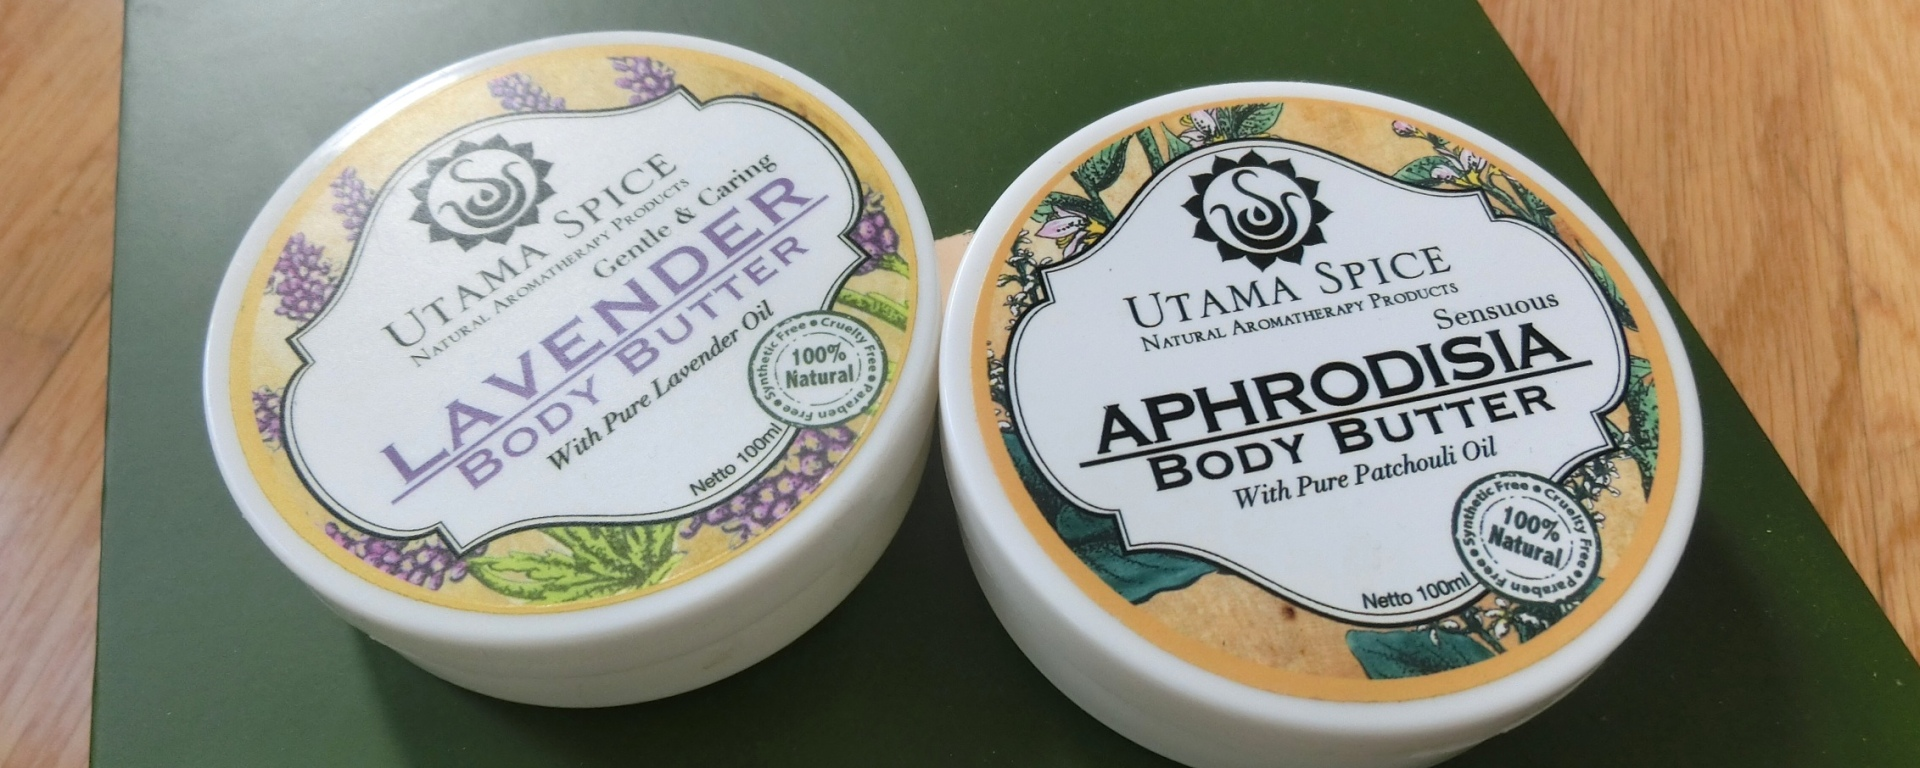 utama spice body butter outlook